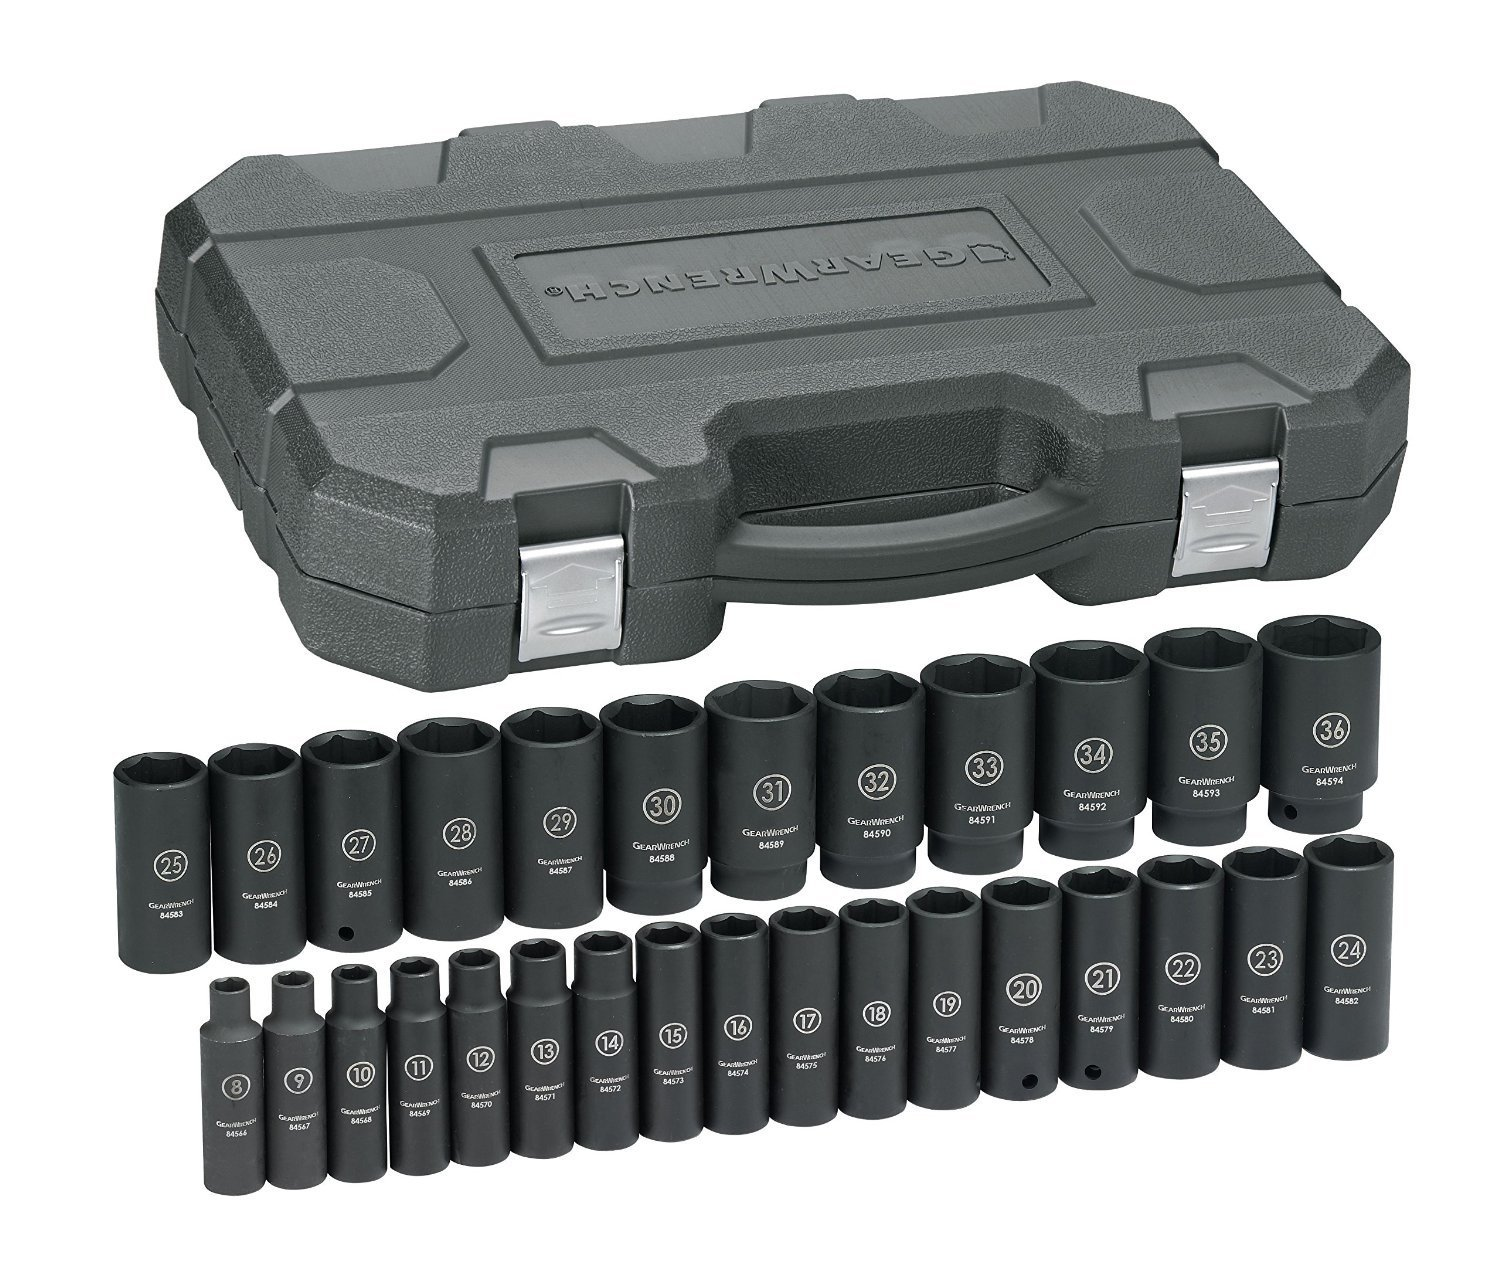 GEARWRENCH 29 Pc. 1/2'' Drive 6 Point Deep Impact Metric Socket Set - 84935N by GearWrench